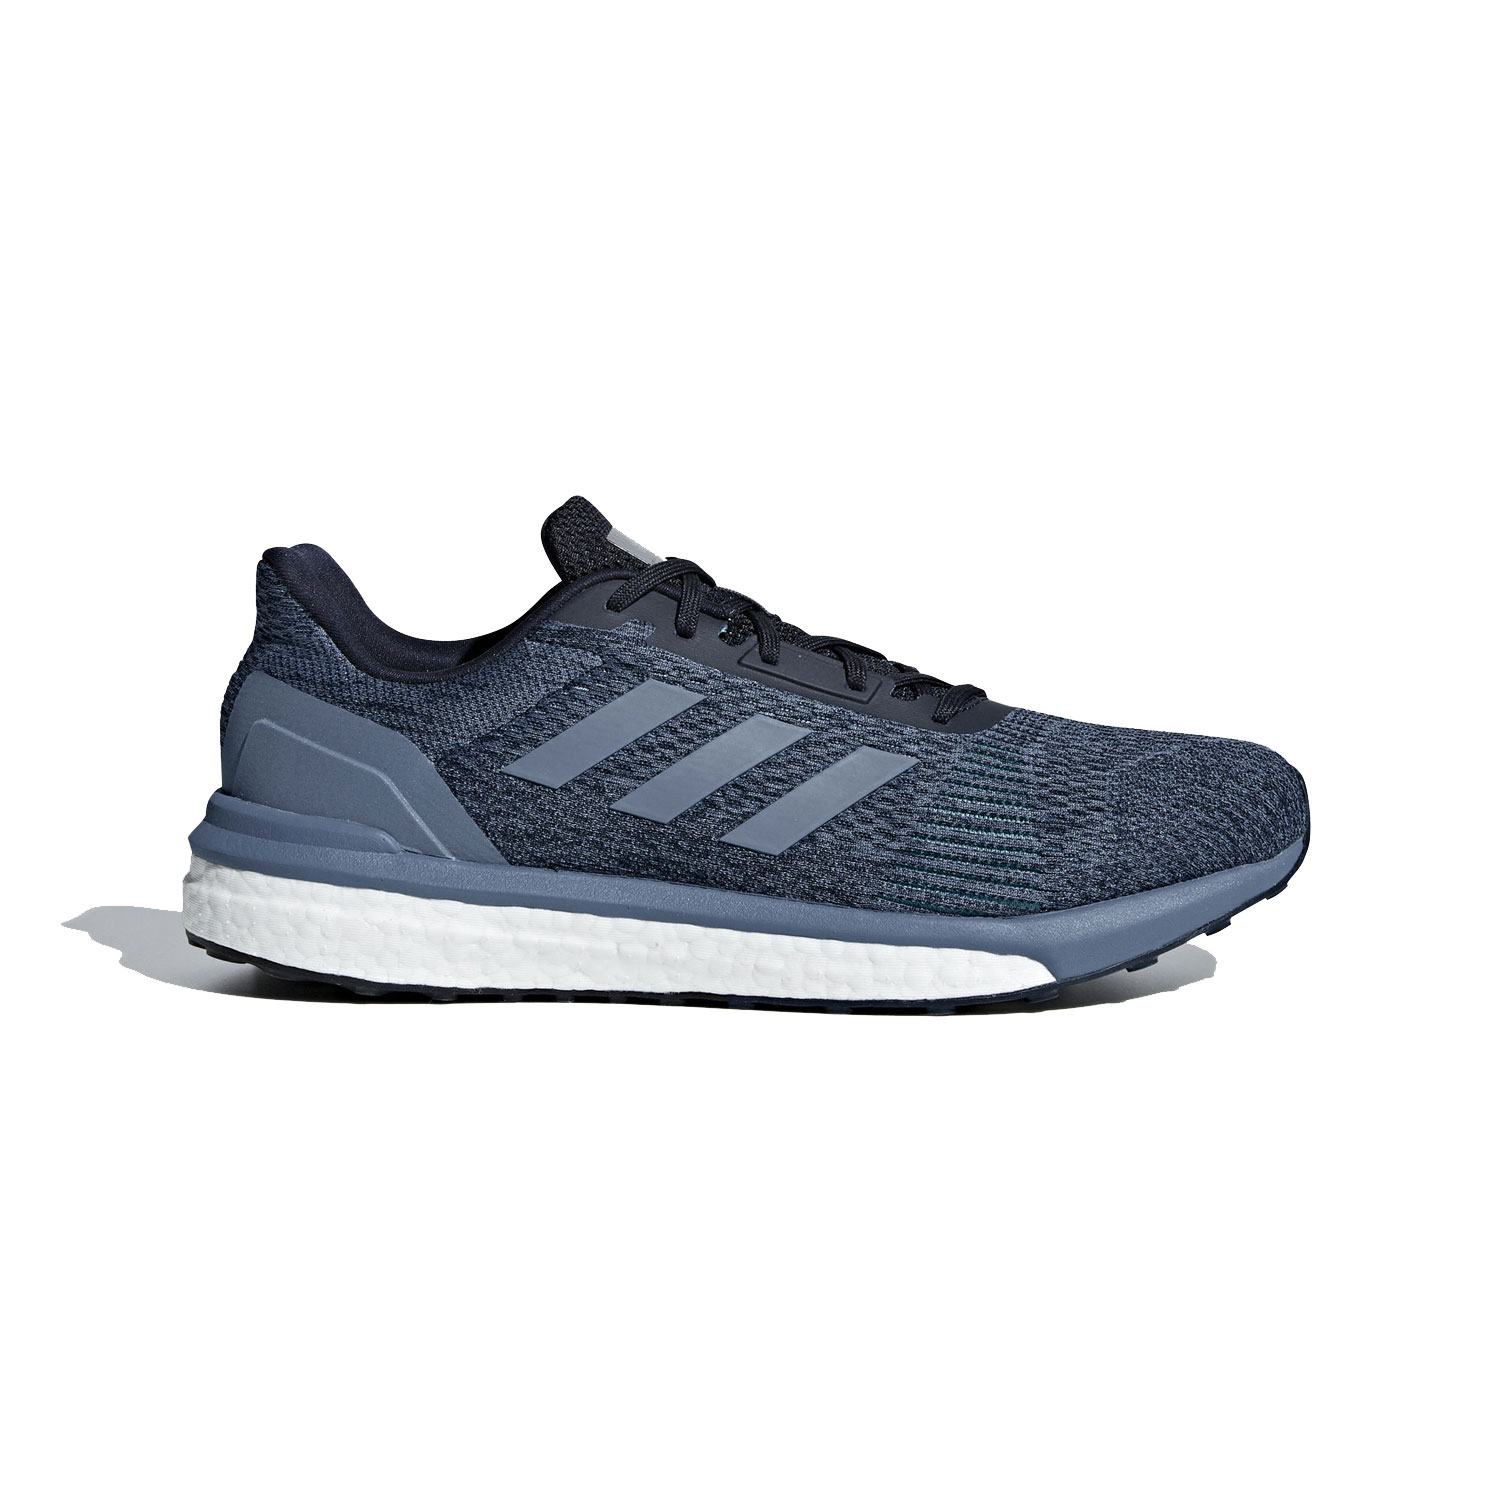 e9a744cecc50c Adidas Men s Solar Drive ST Running Shoes- Mystery Ink